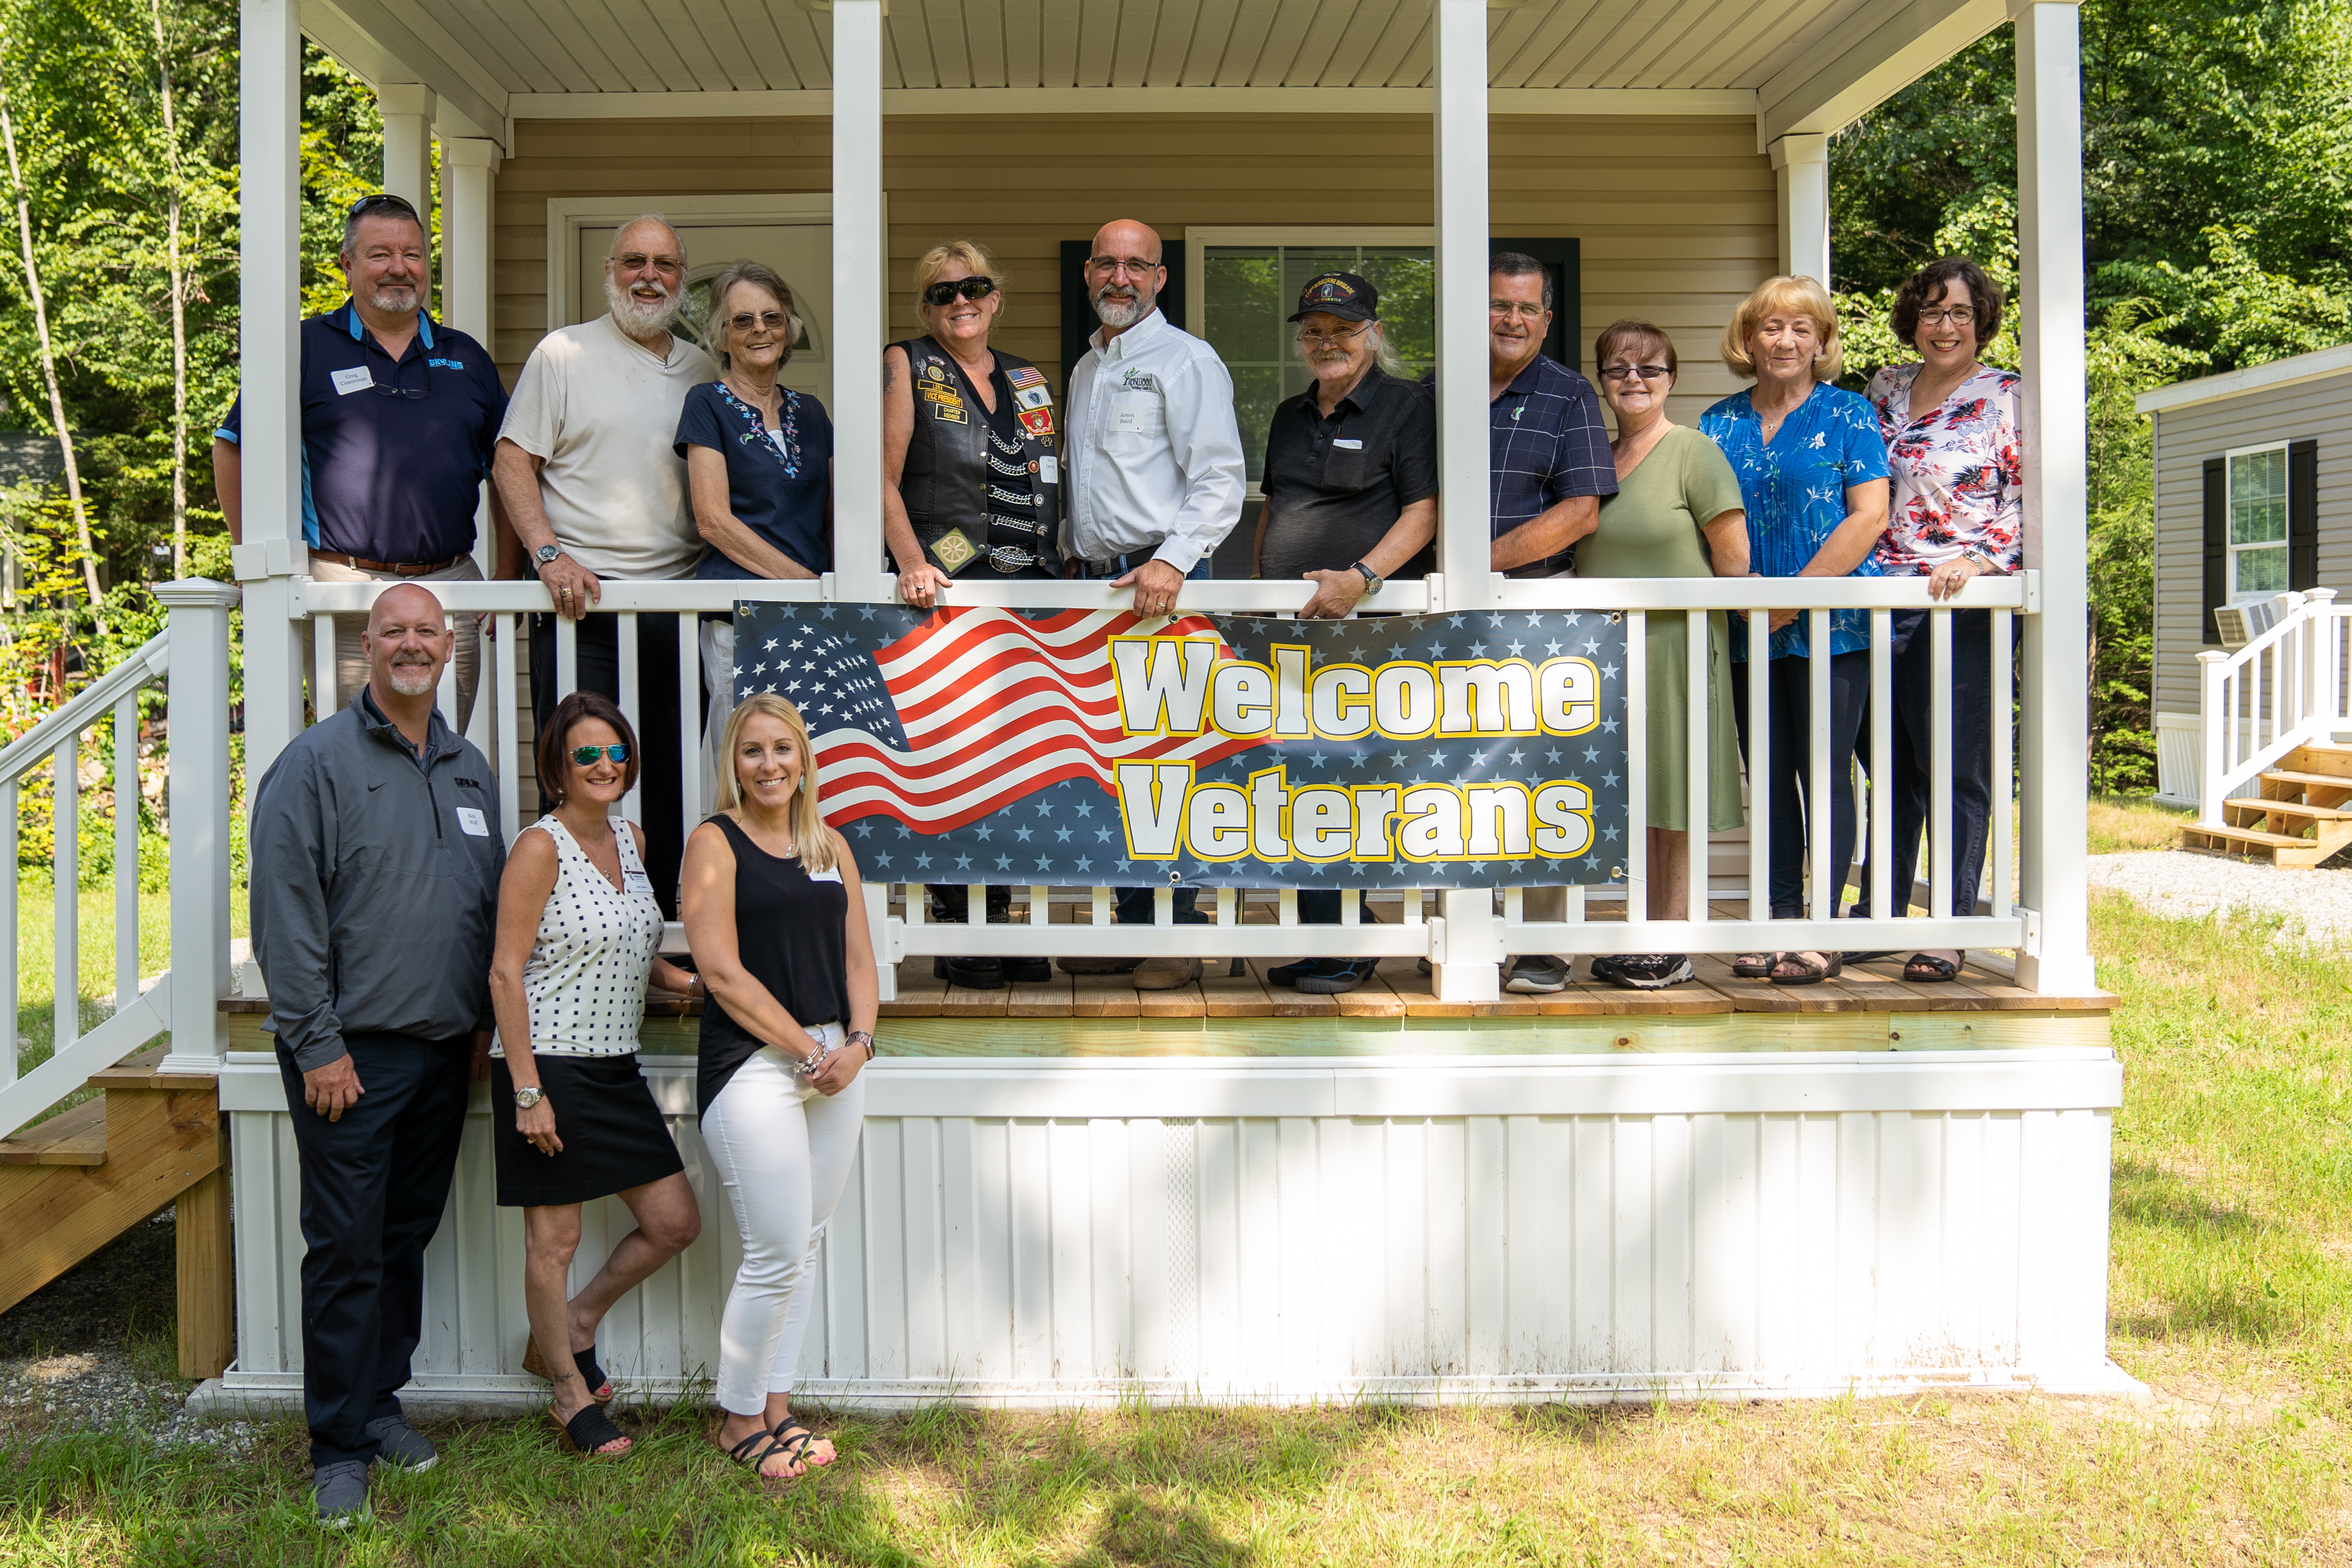 The Rock Rimmon board of directors, three veteran homeowners , and others posed behind a sign that says Welcome Veterans